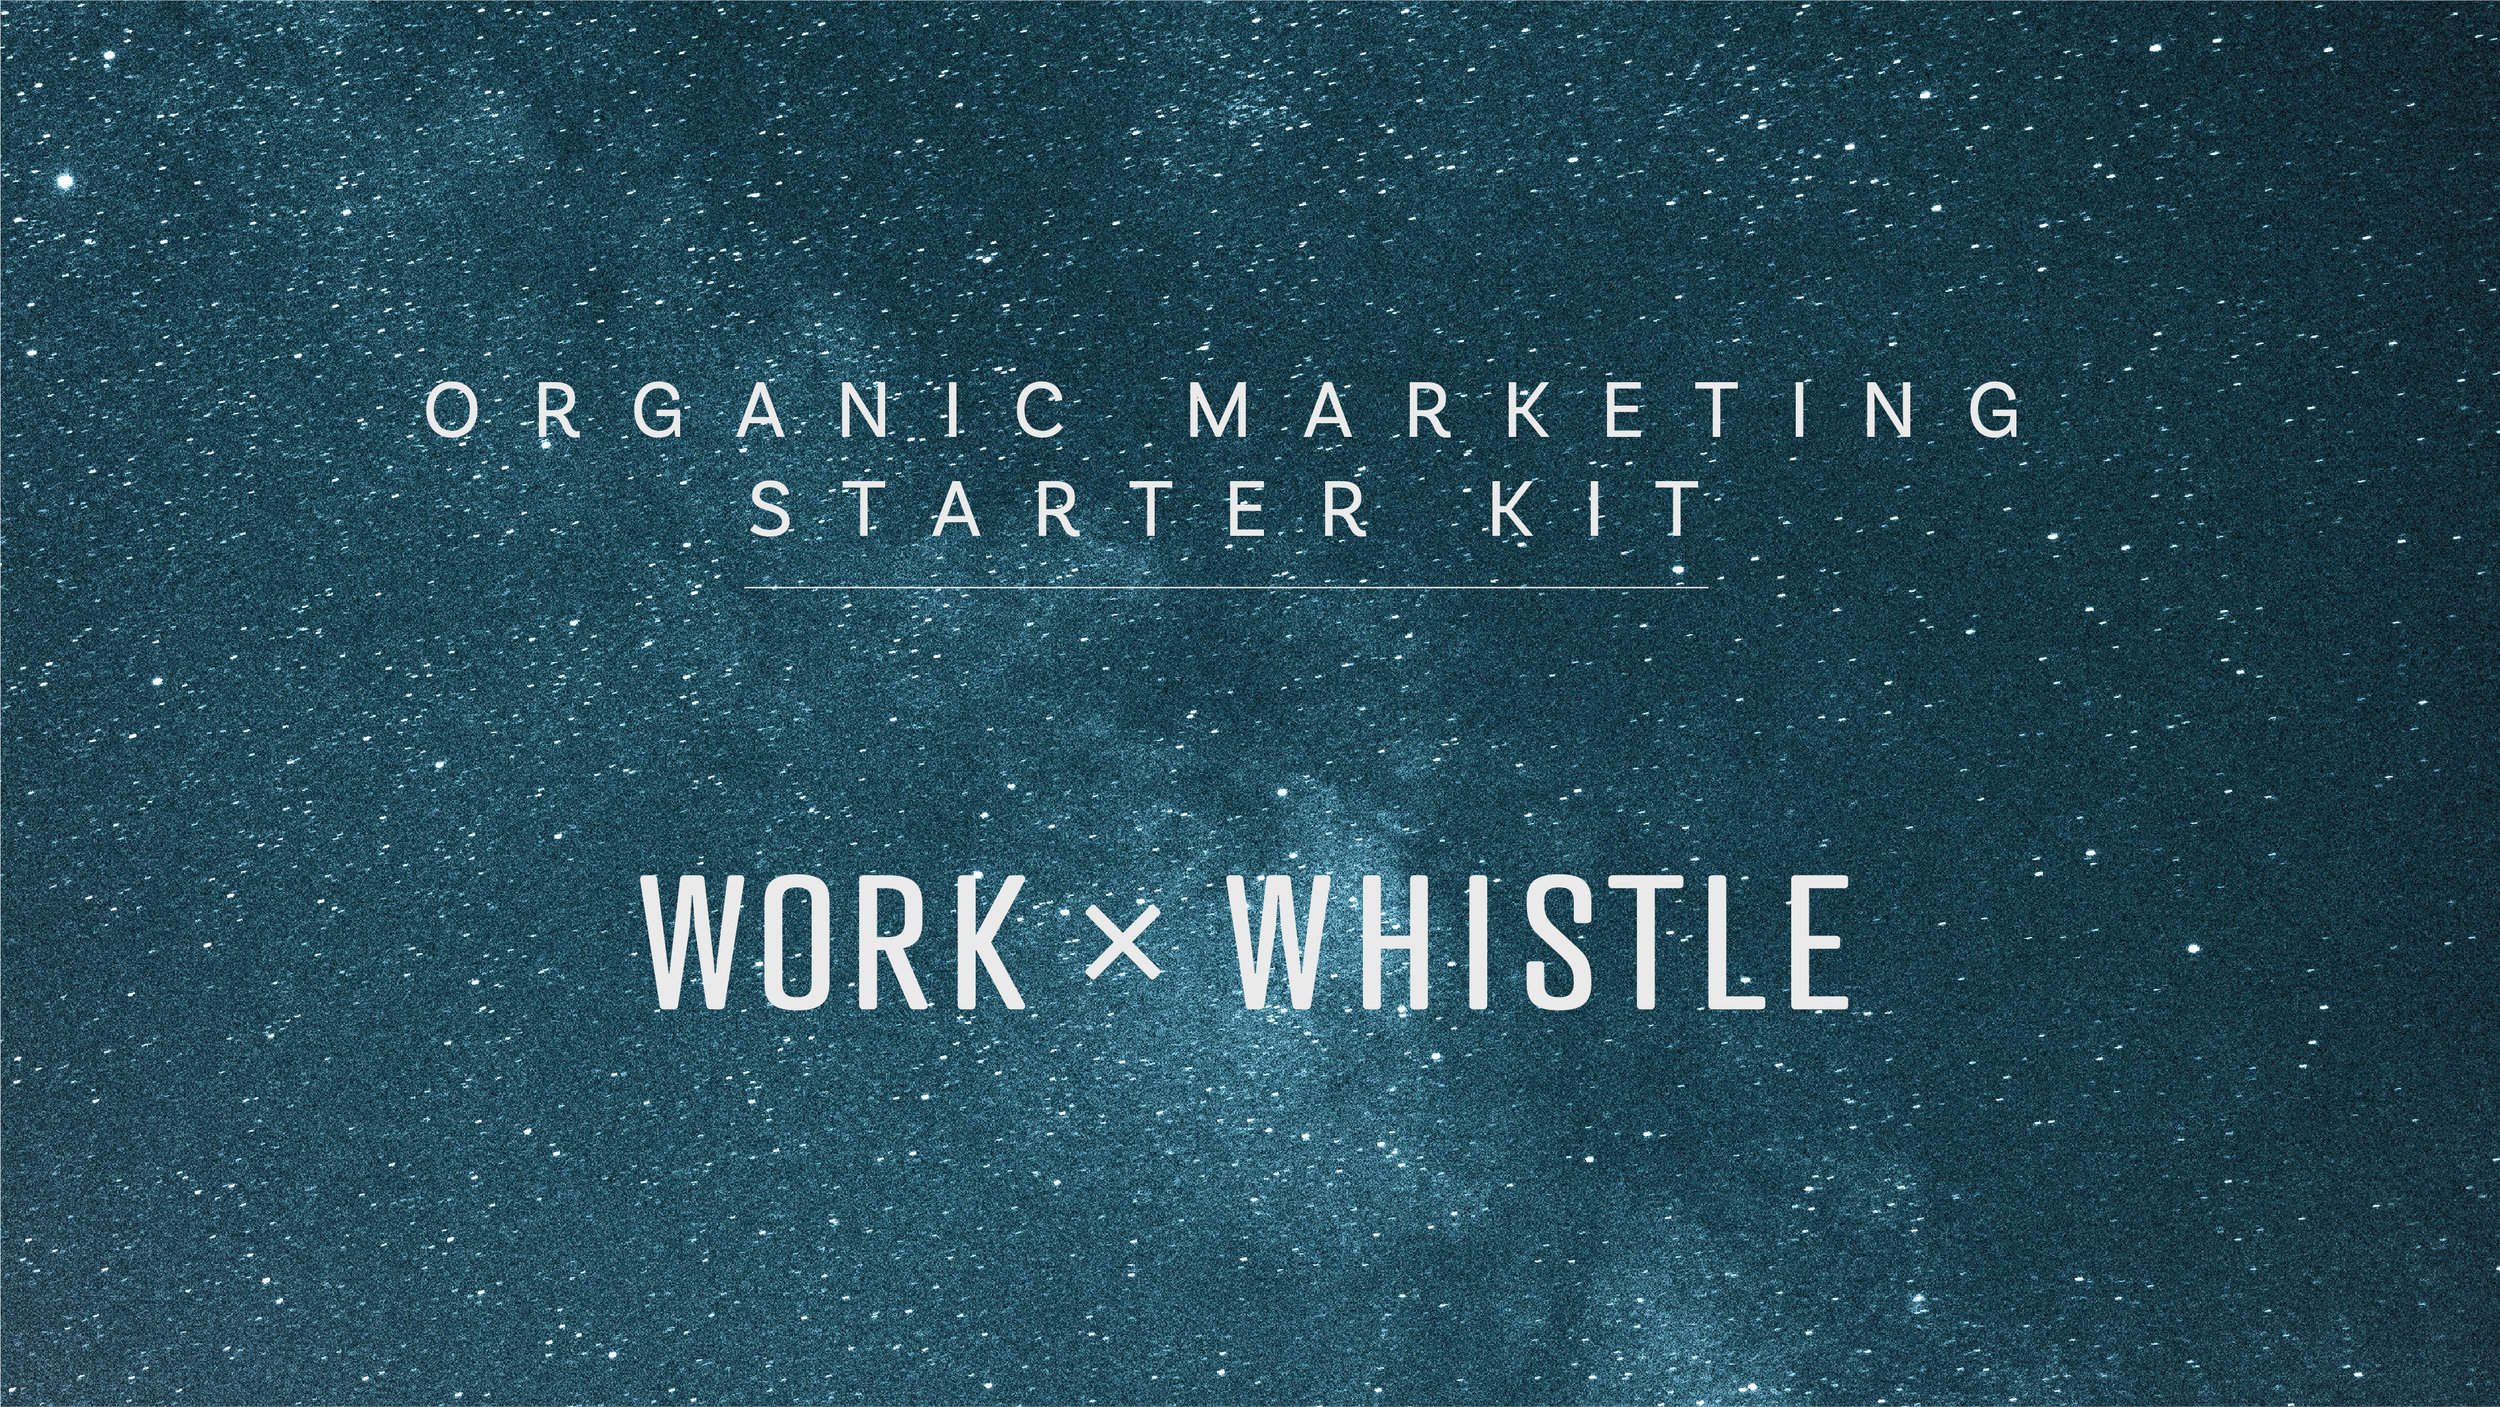 organic-marketing-starter-kit@2x-80.jpg